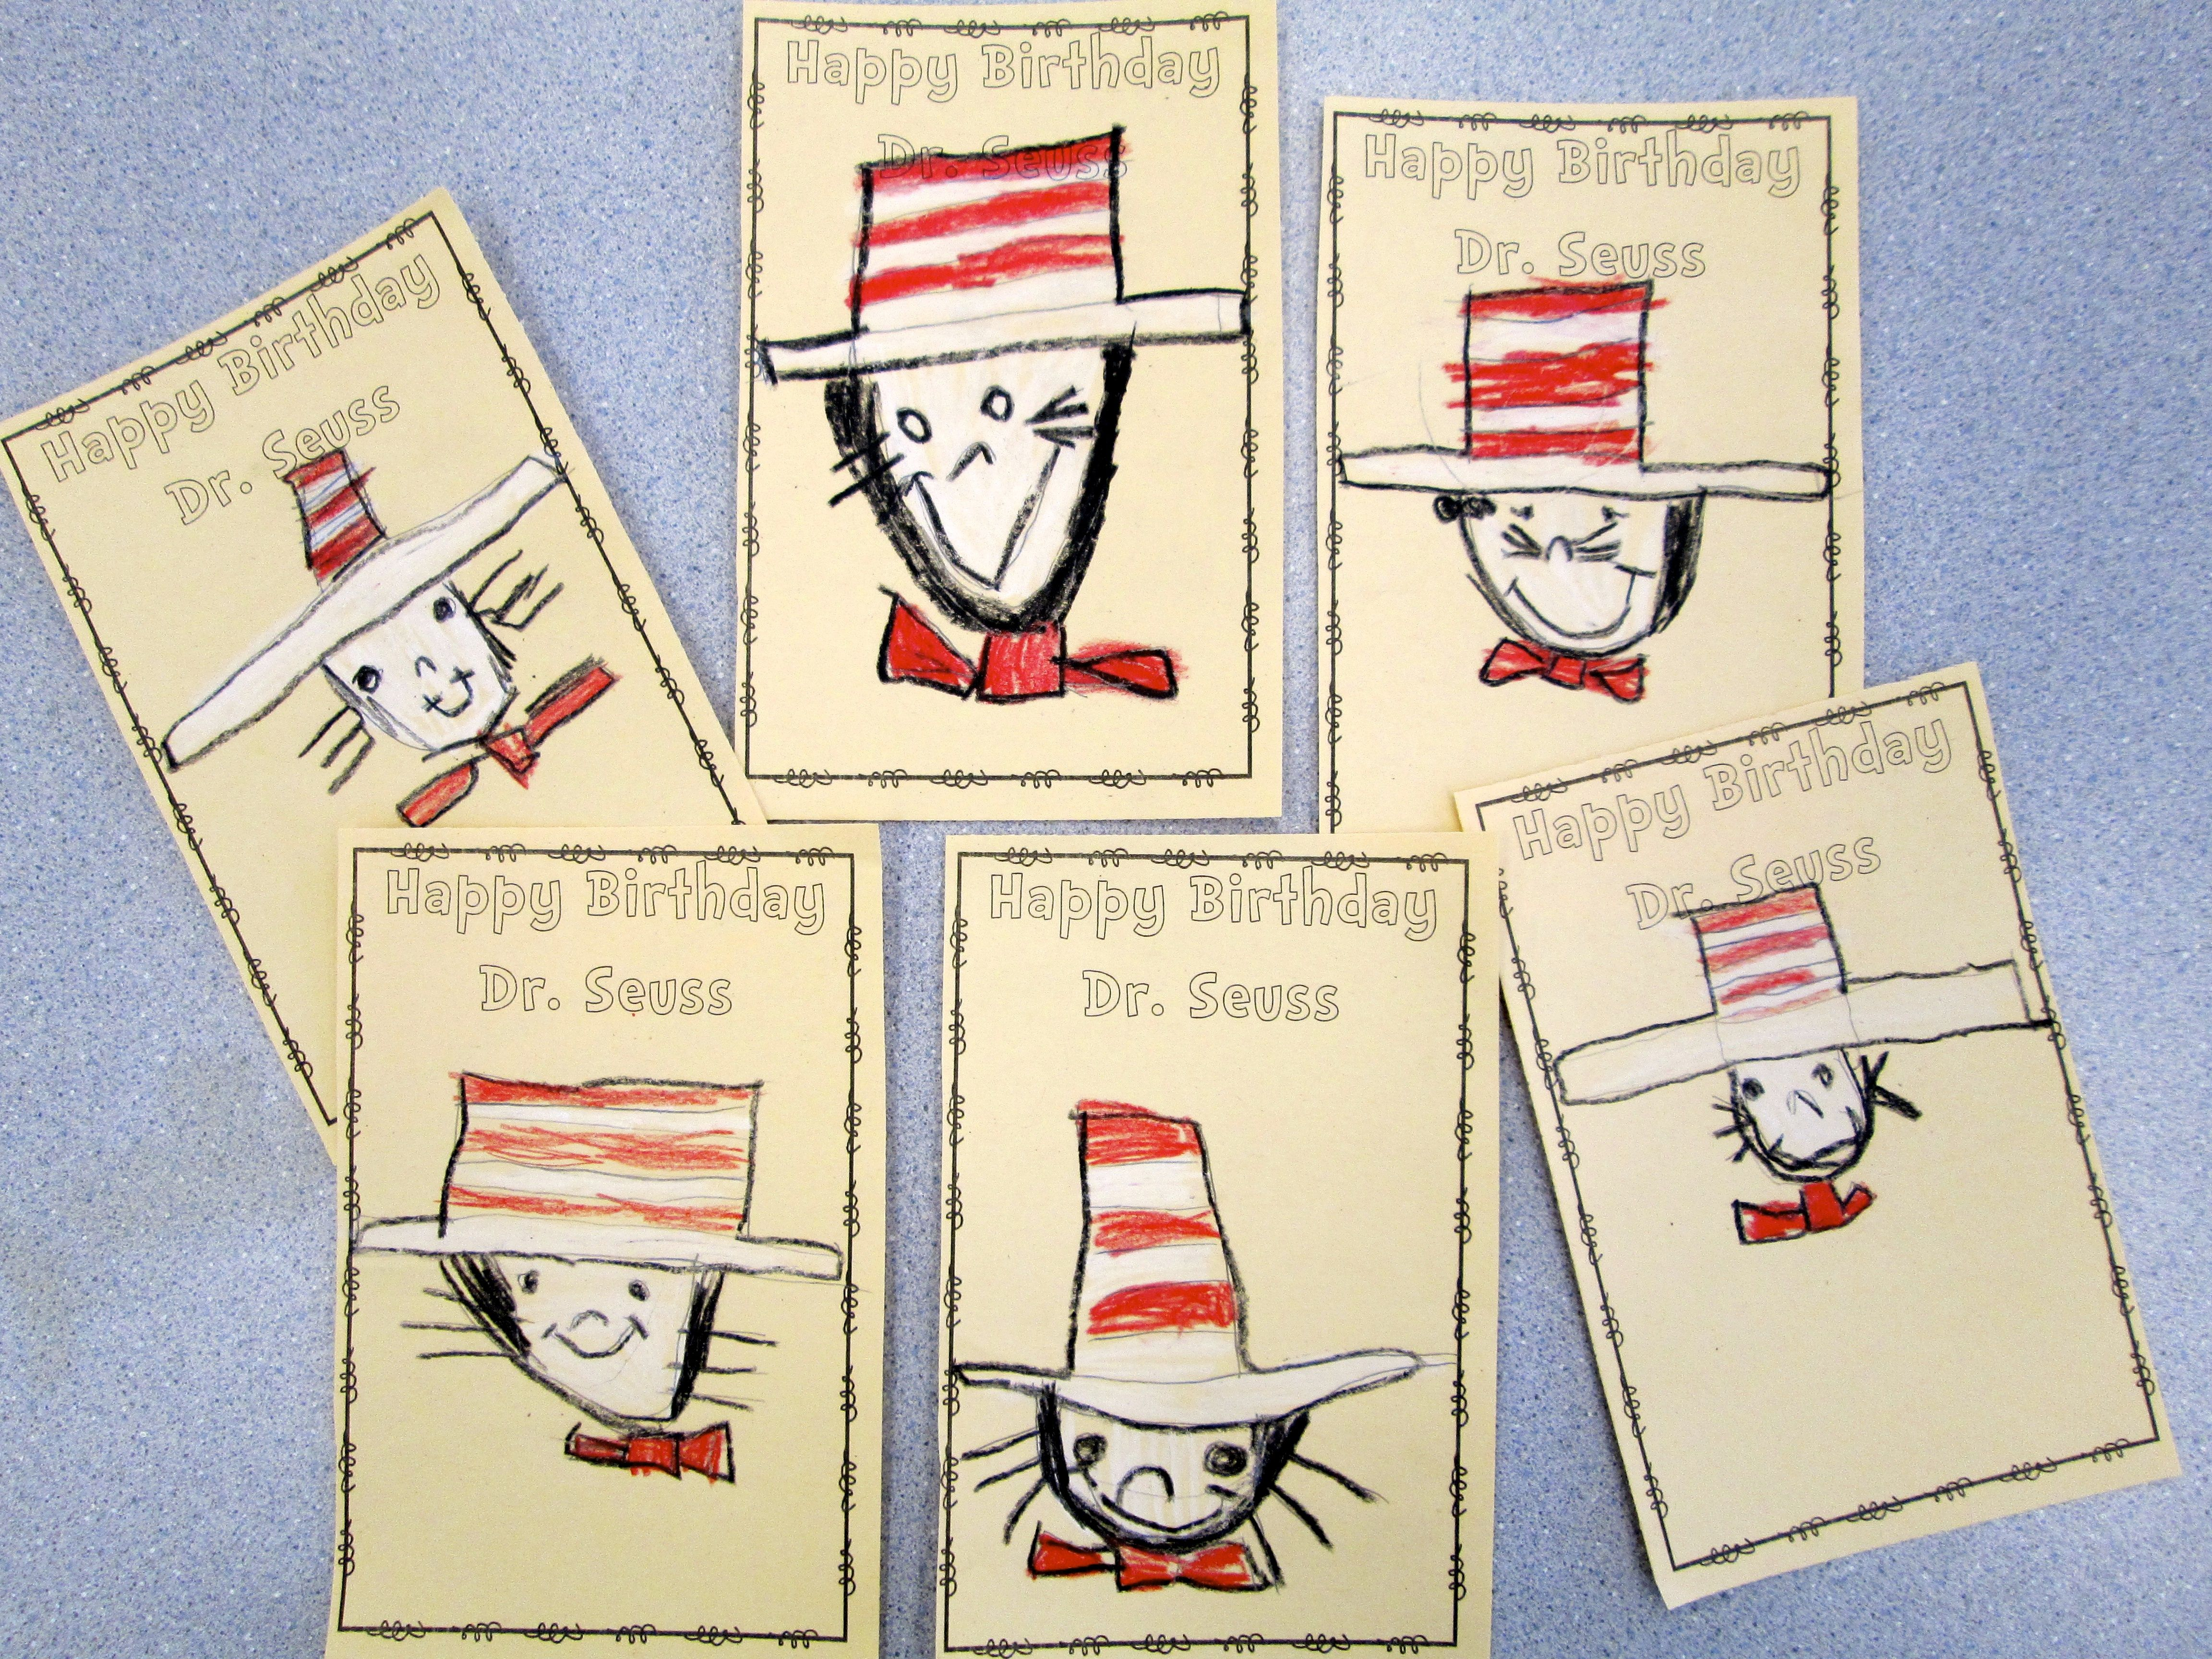 Dr Seuss Directed Drawing Cat In The Hat Dr Seuss Directed Drawing Cat In The Hat Directed Drawing Directed Drawing